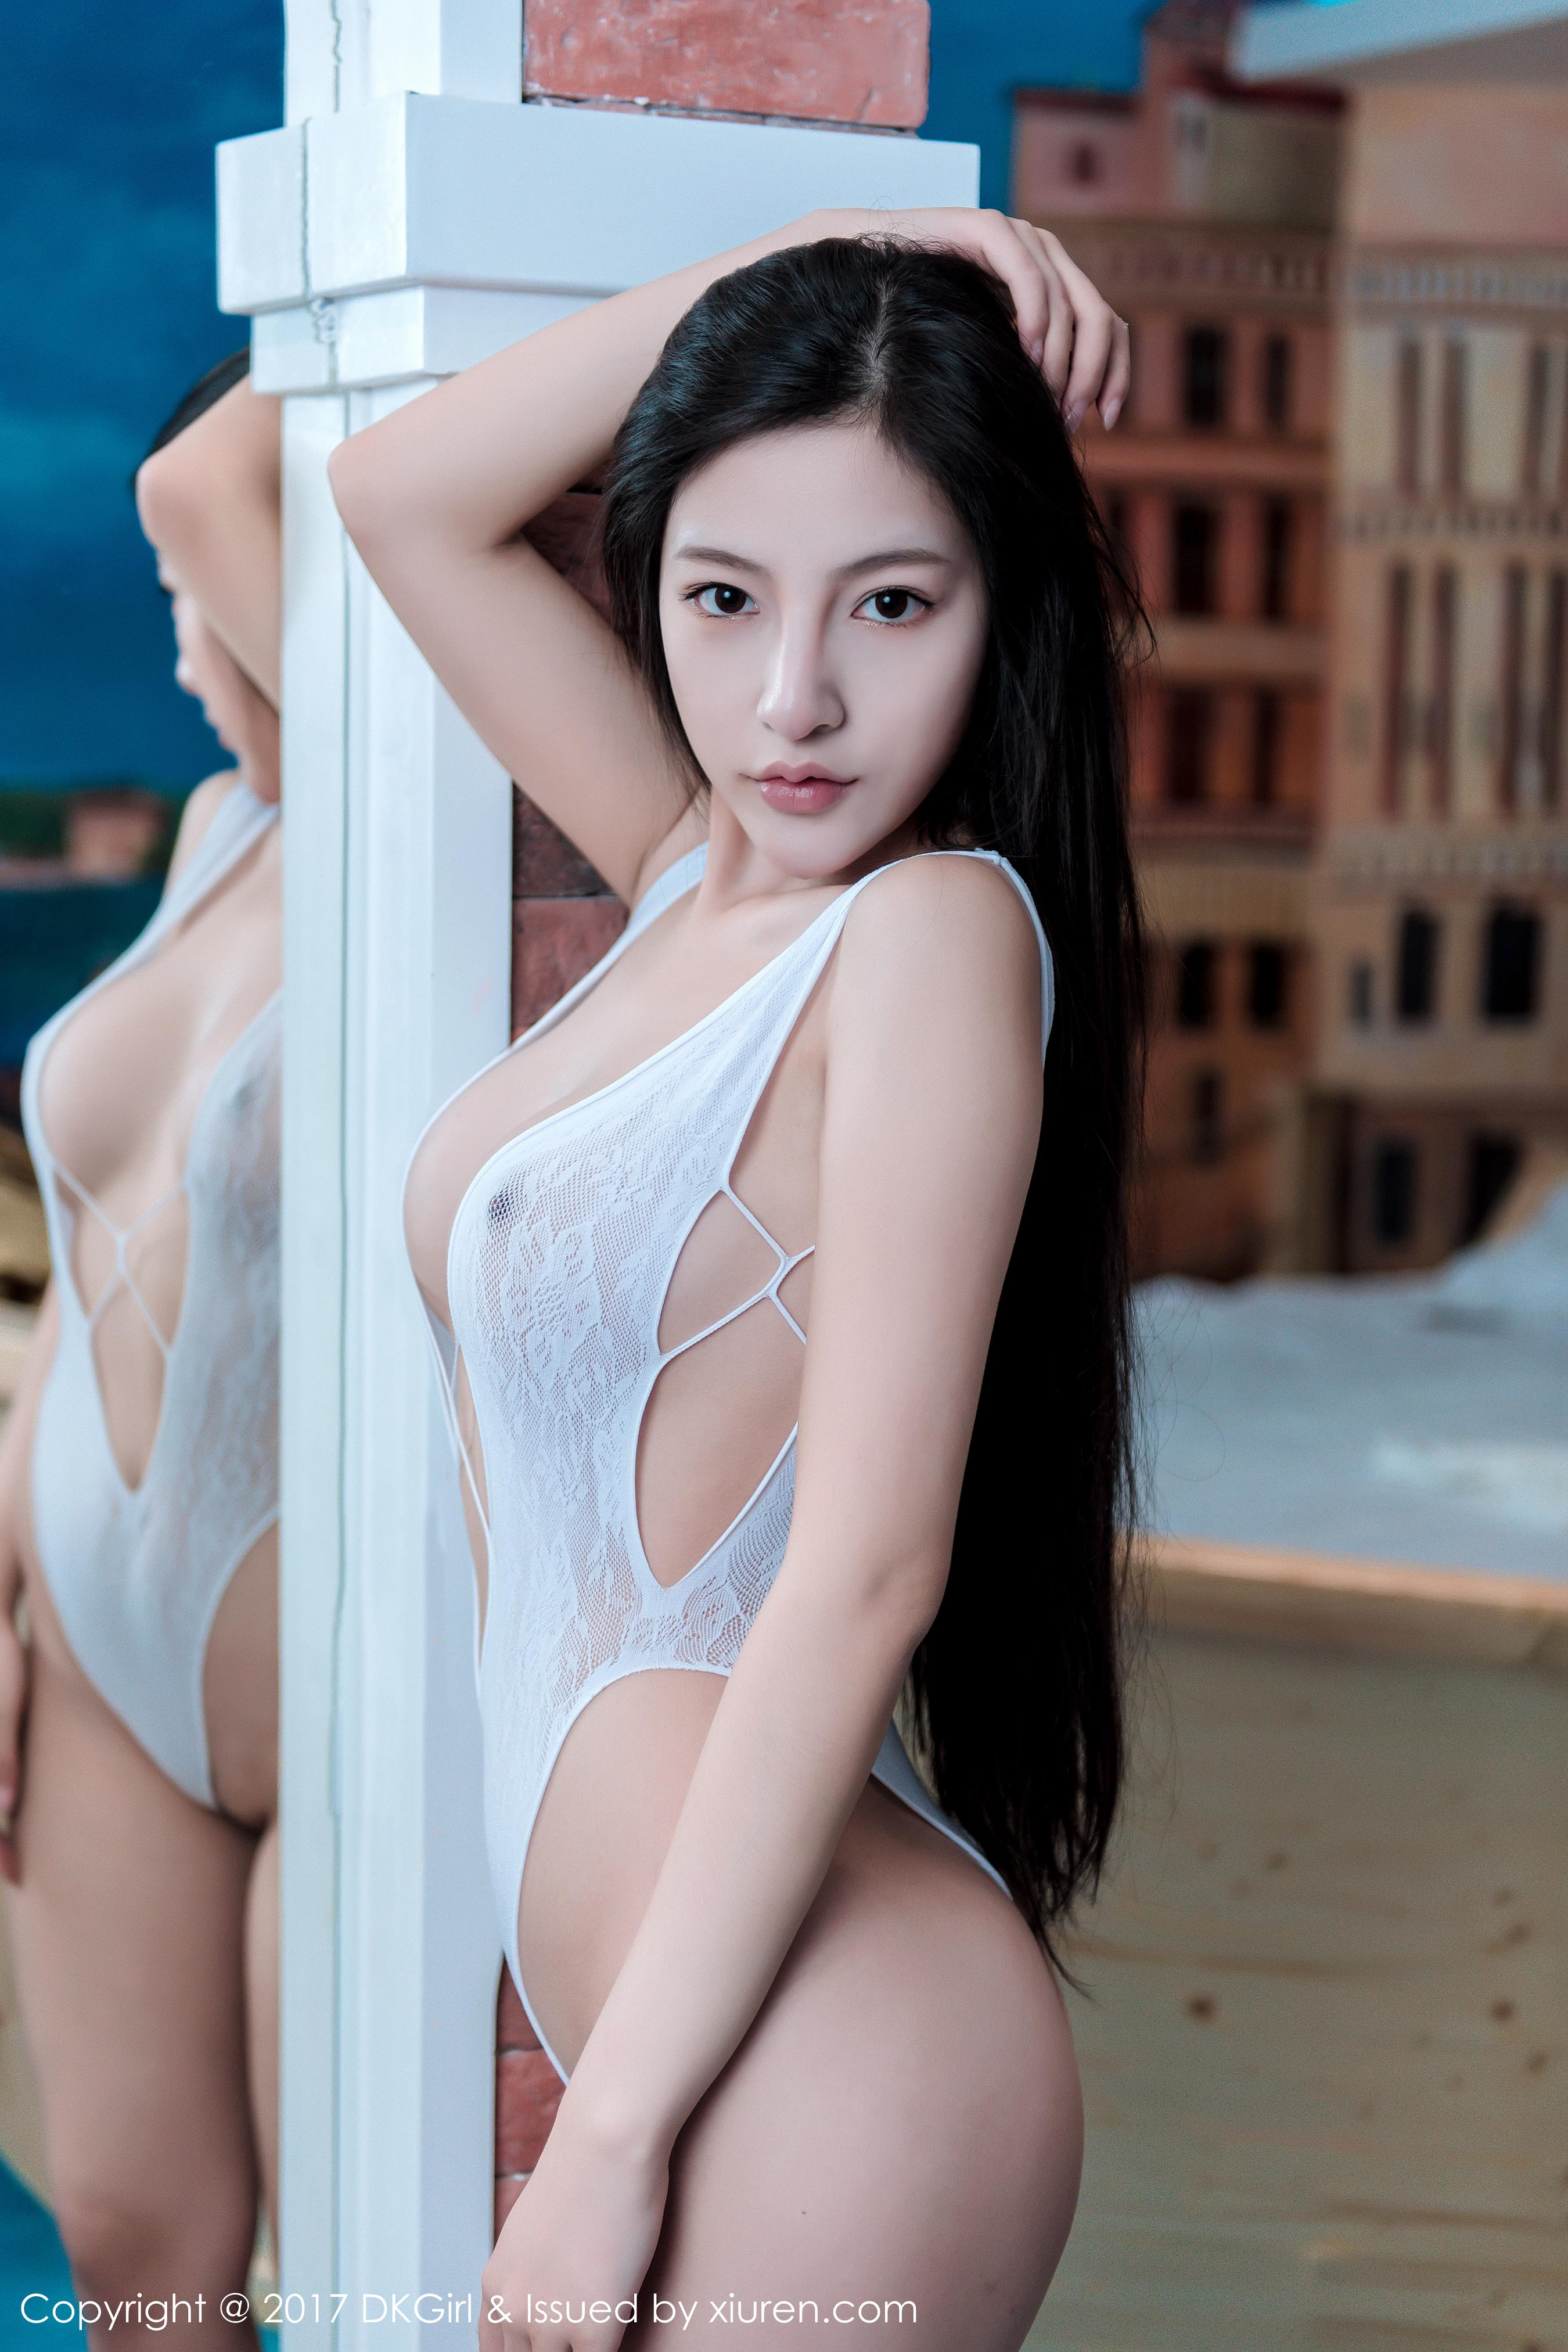 hot Chinese woman in lingerie